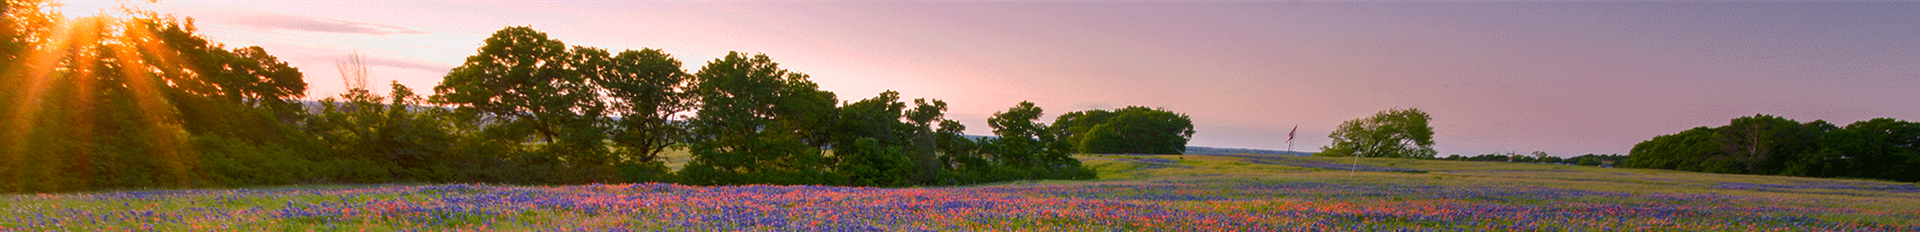 Grief & Healing | Denton Funeral Home and Cremation Services